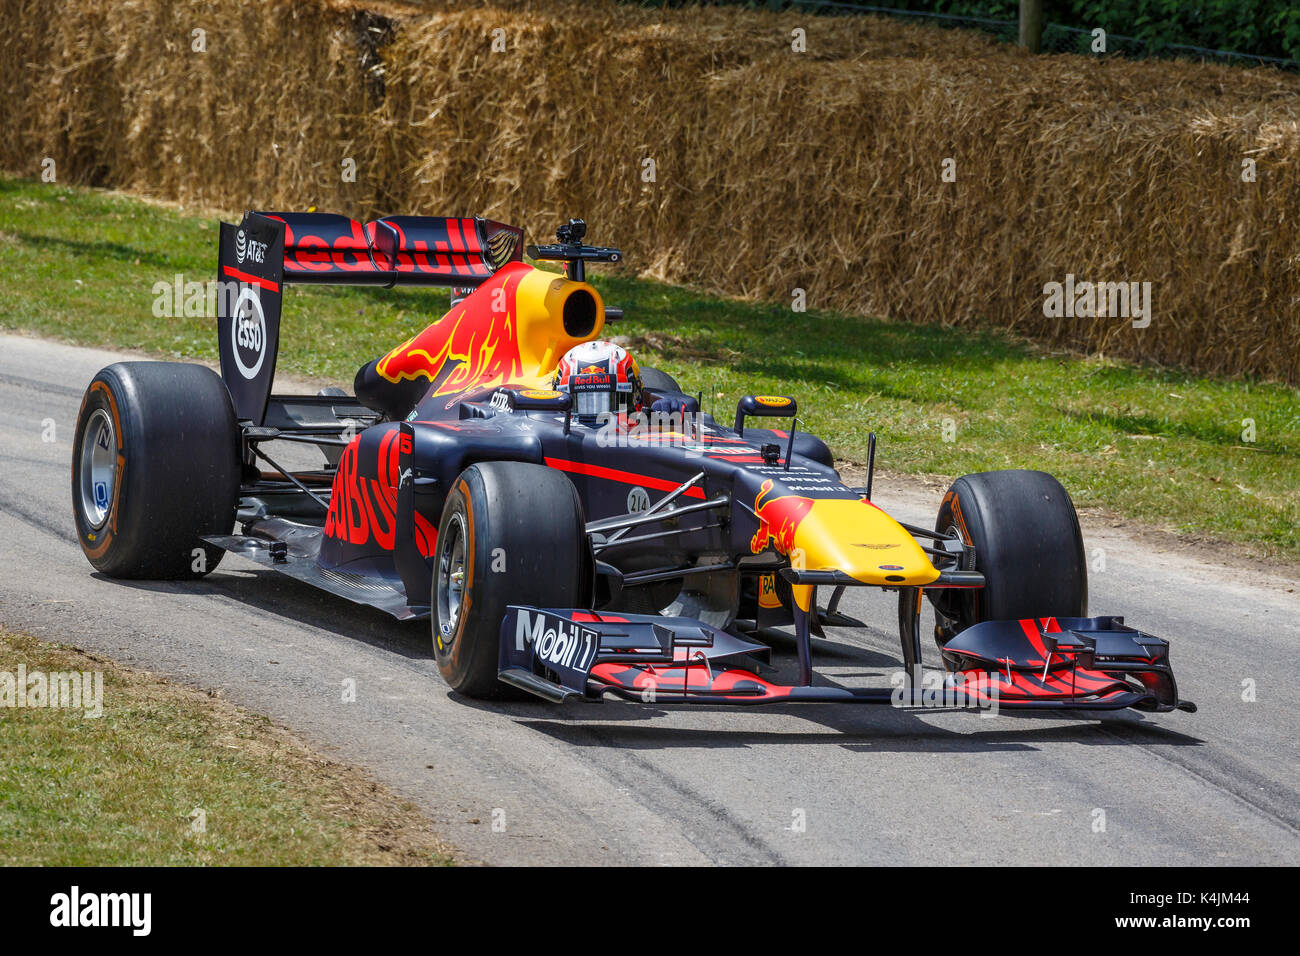 2011 Red Bull Renault RB7 F1 Car With Driver Pierre Gasly At The 2017 Goodwood